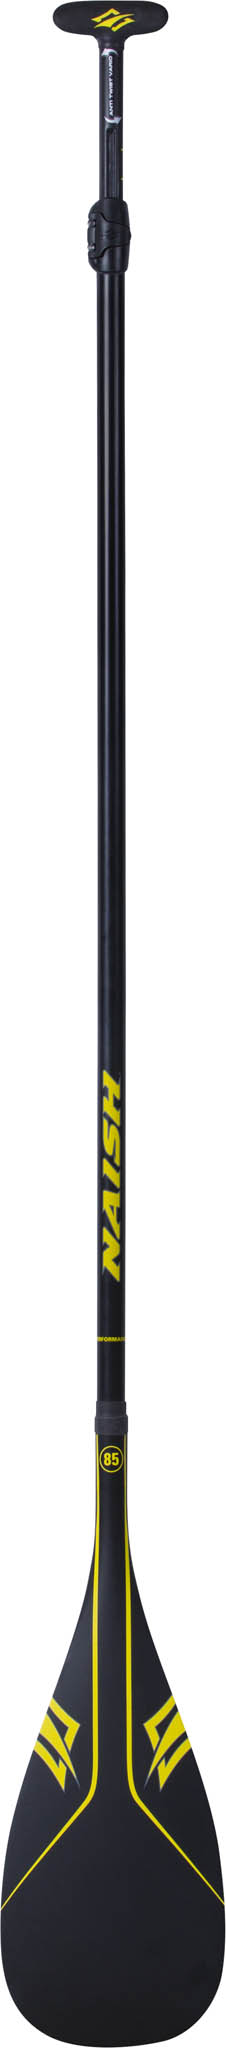 Naish Performance SUP Paddle